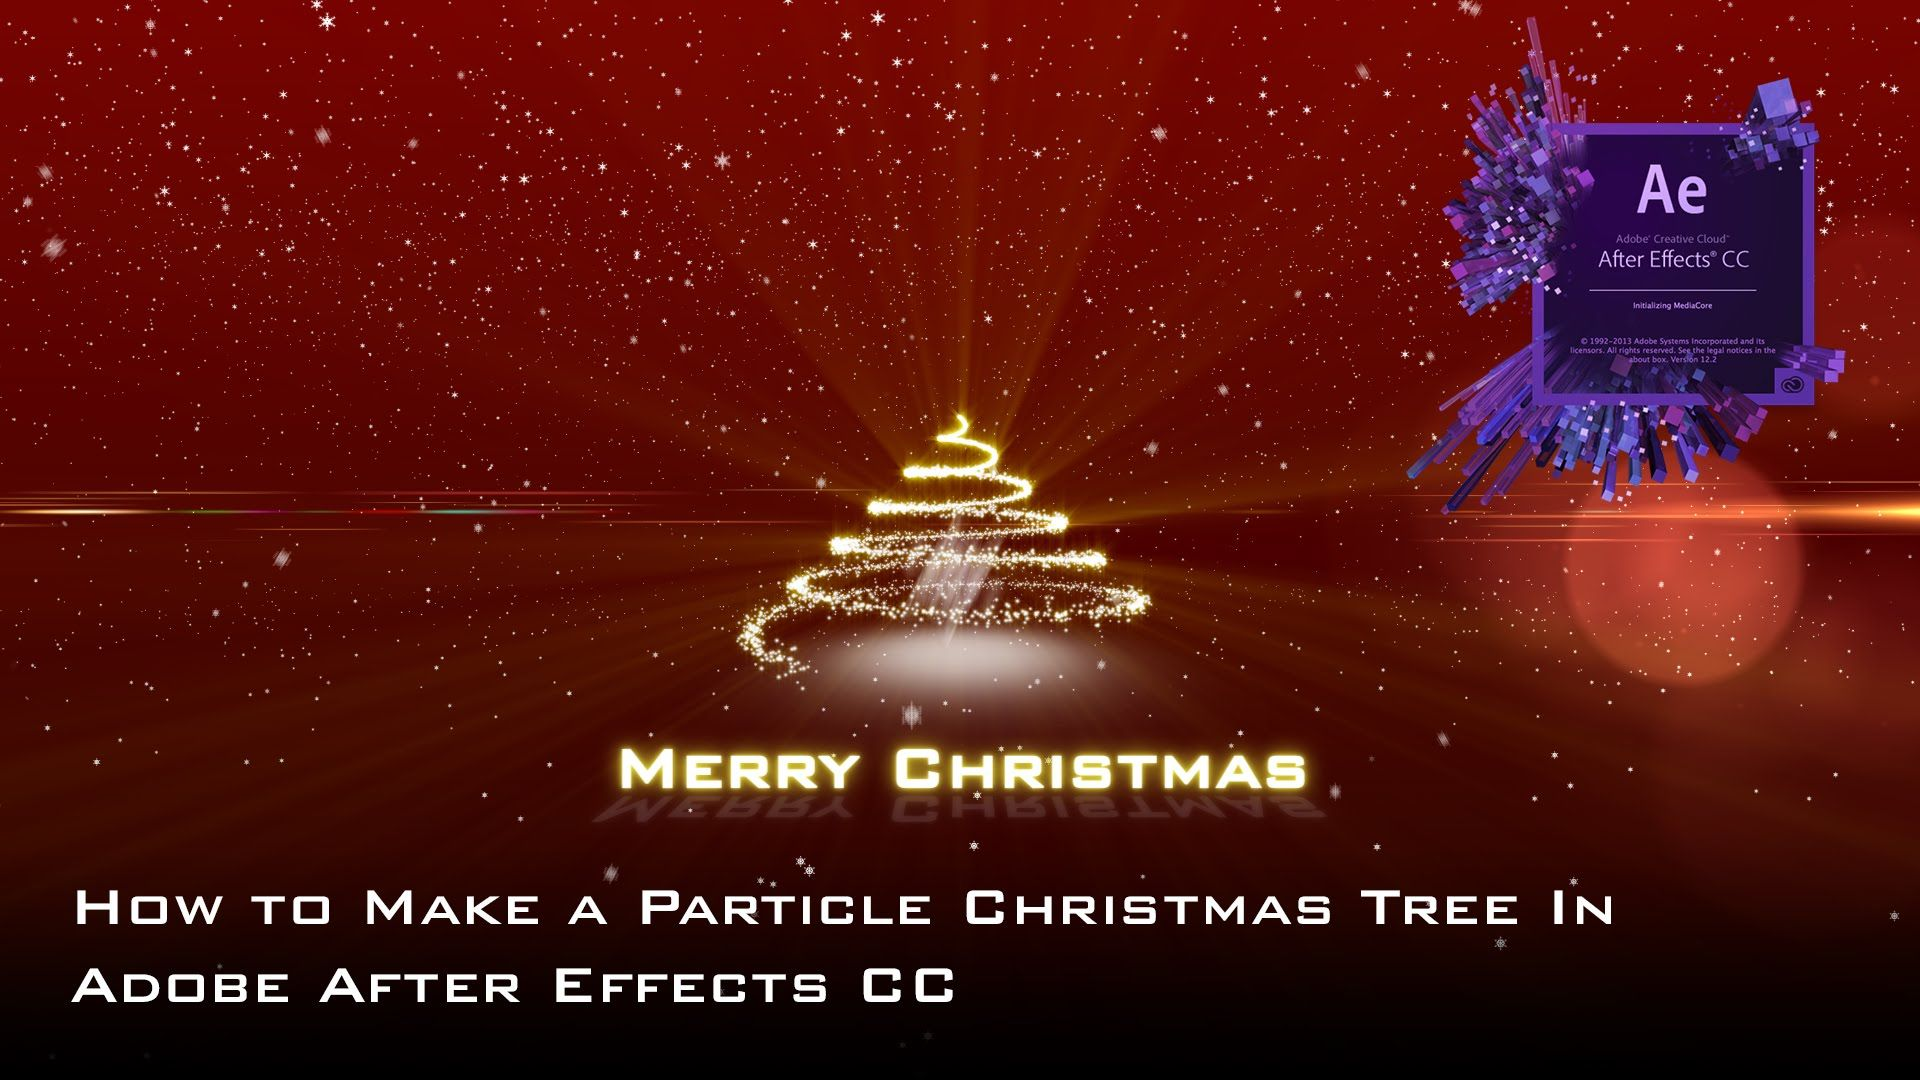 How To Make A Glowing Particle Christmas Tree With Snow In Adobe After Effects Christmas Tree With Snow Christmas Tree How To Make